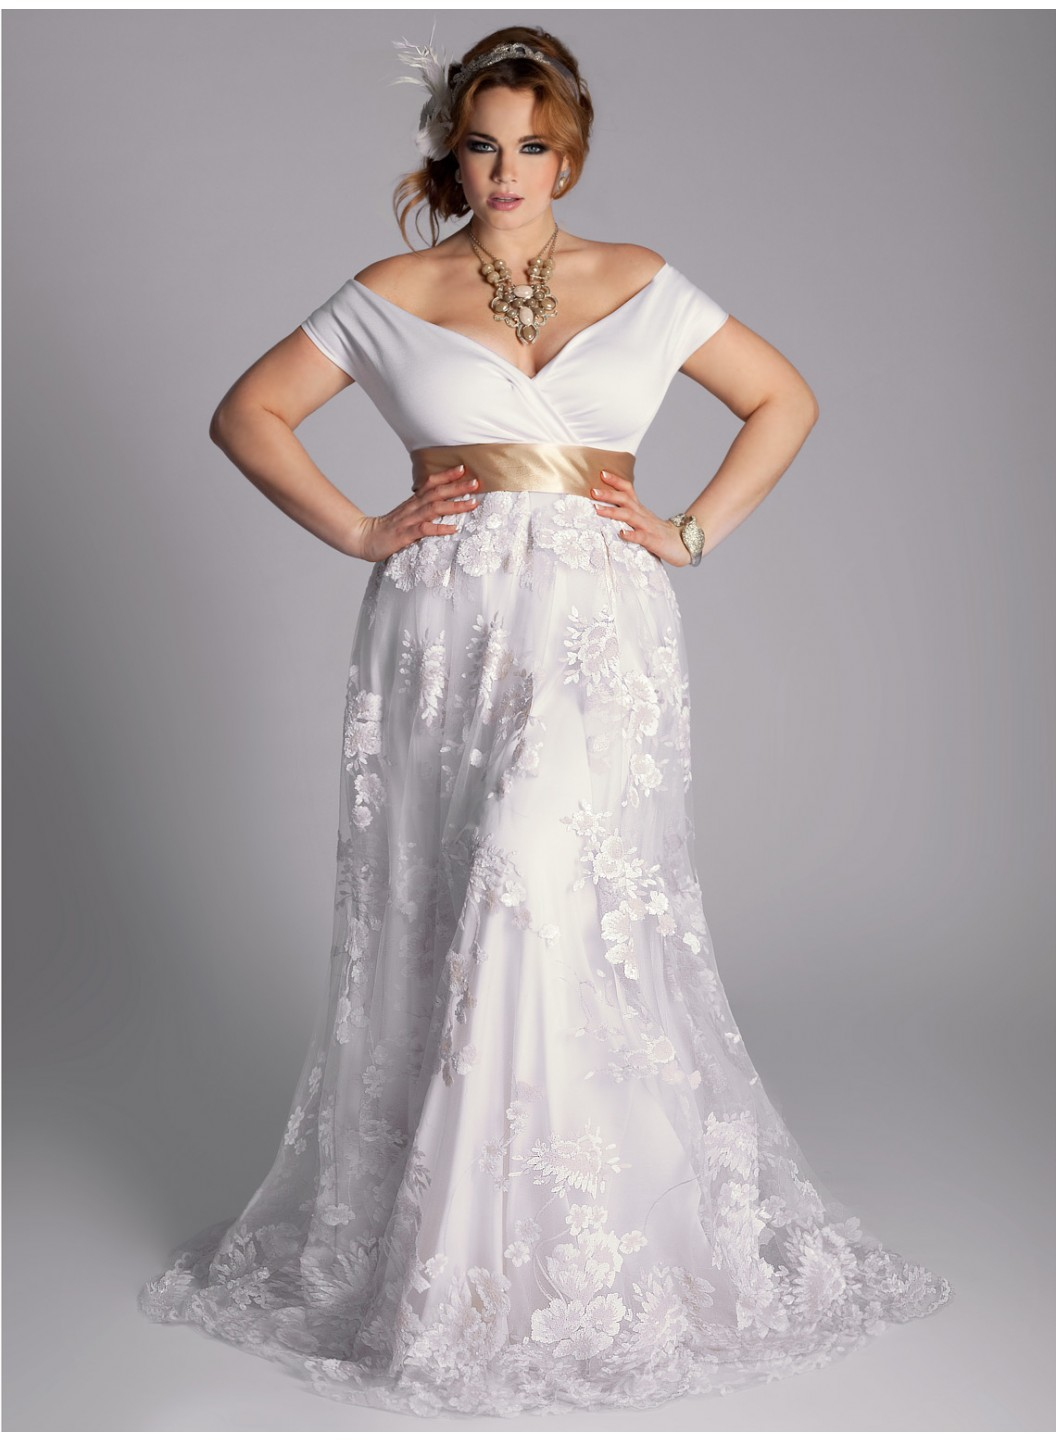 Ten plus size lace wedding dresses that you will love for Best wedding dresses for short fat brides